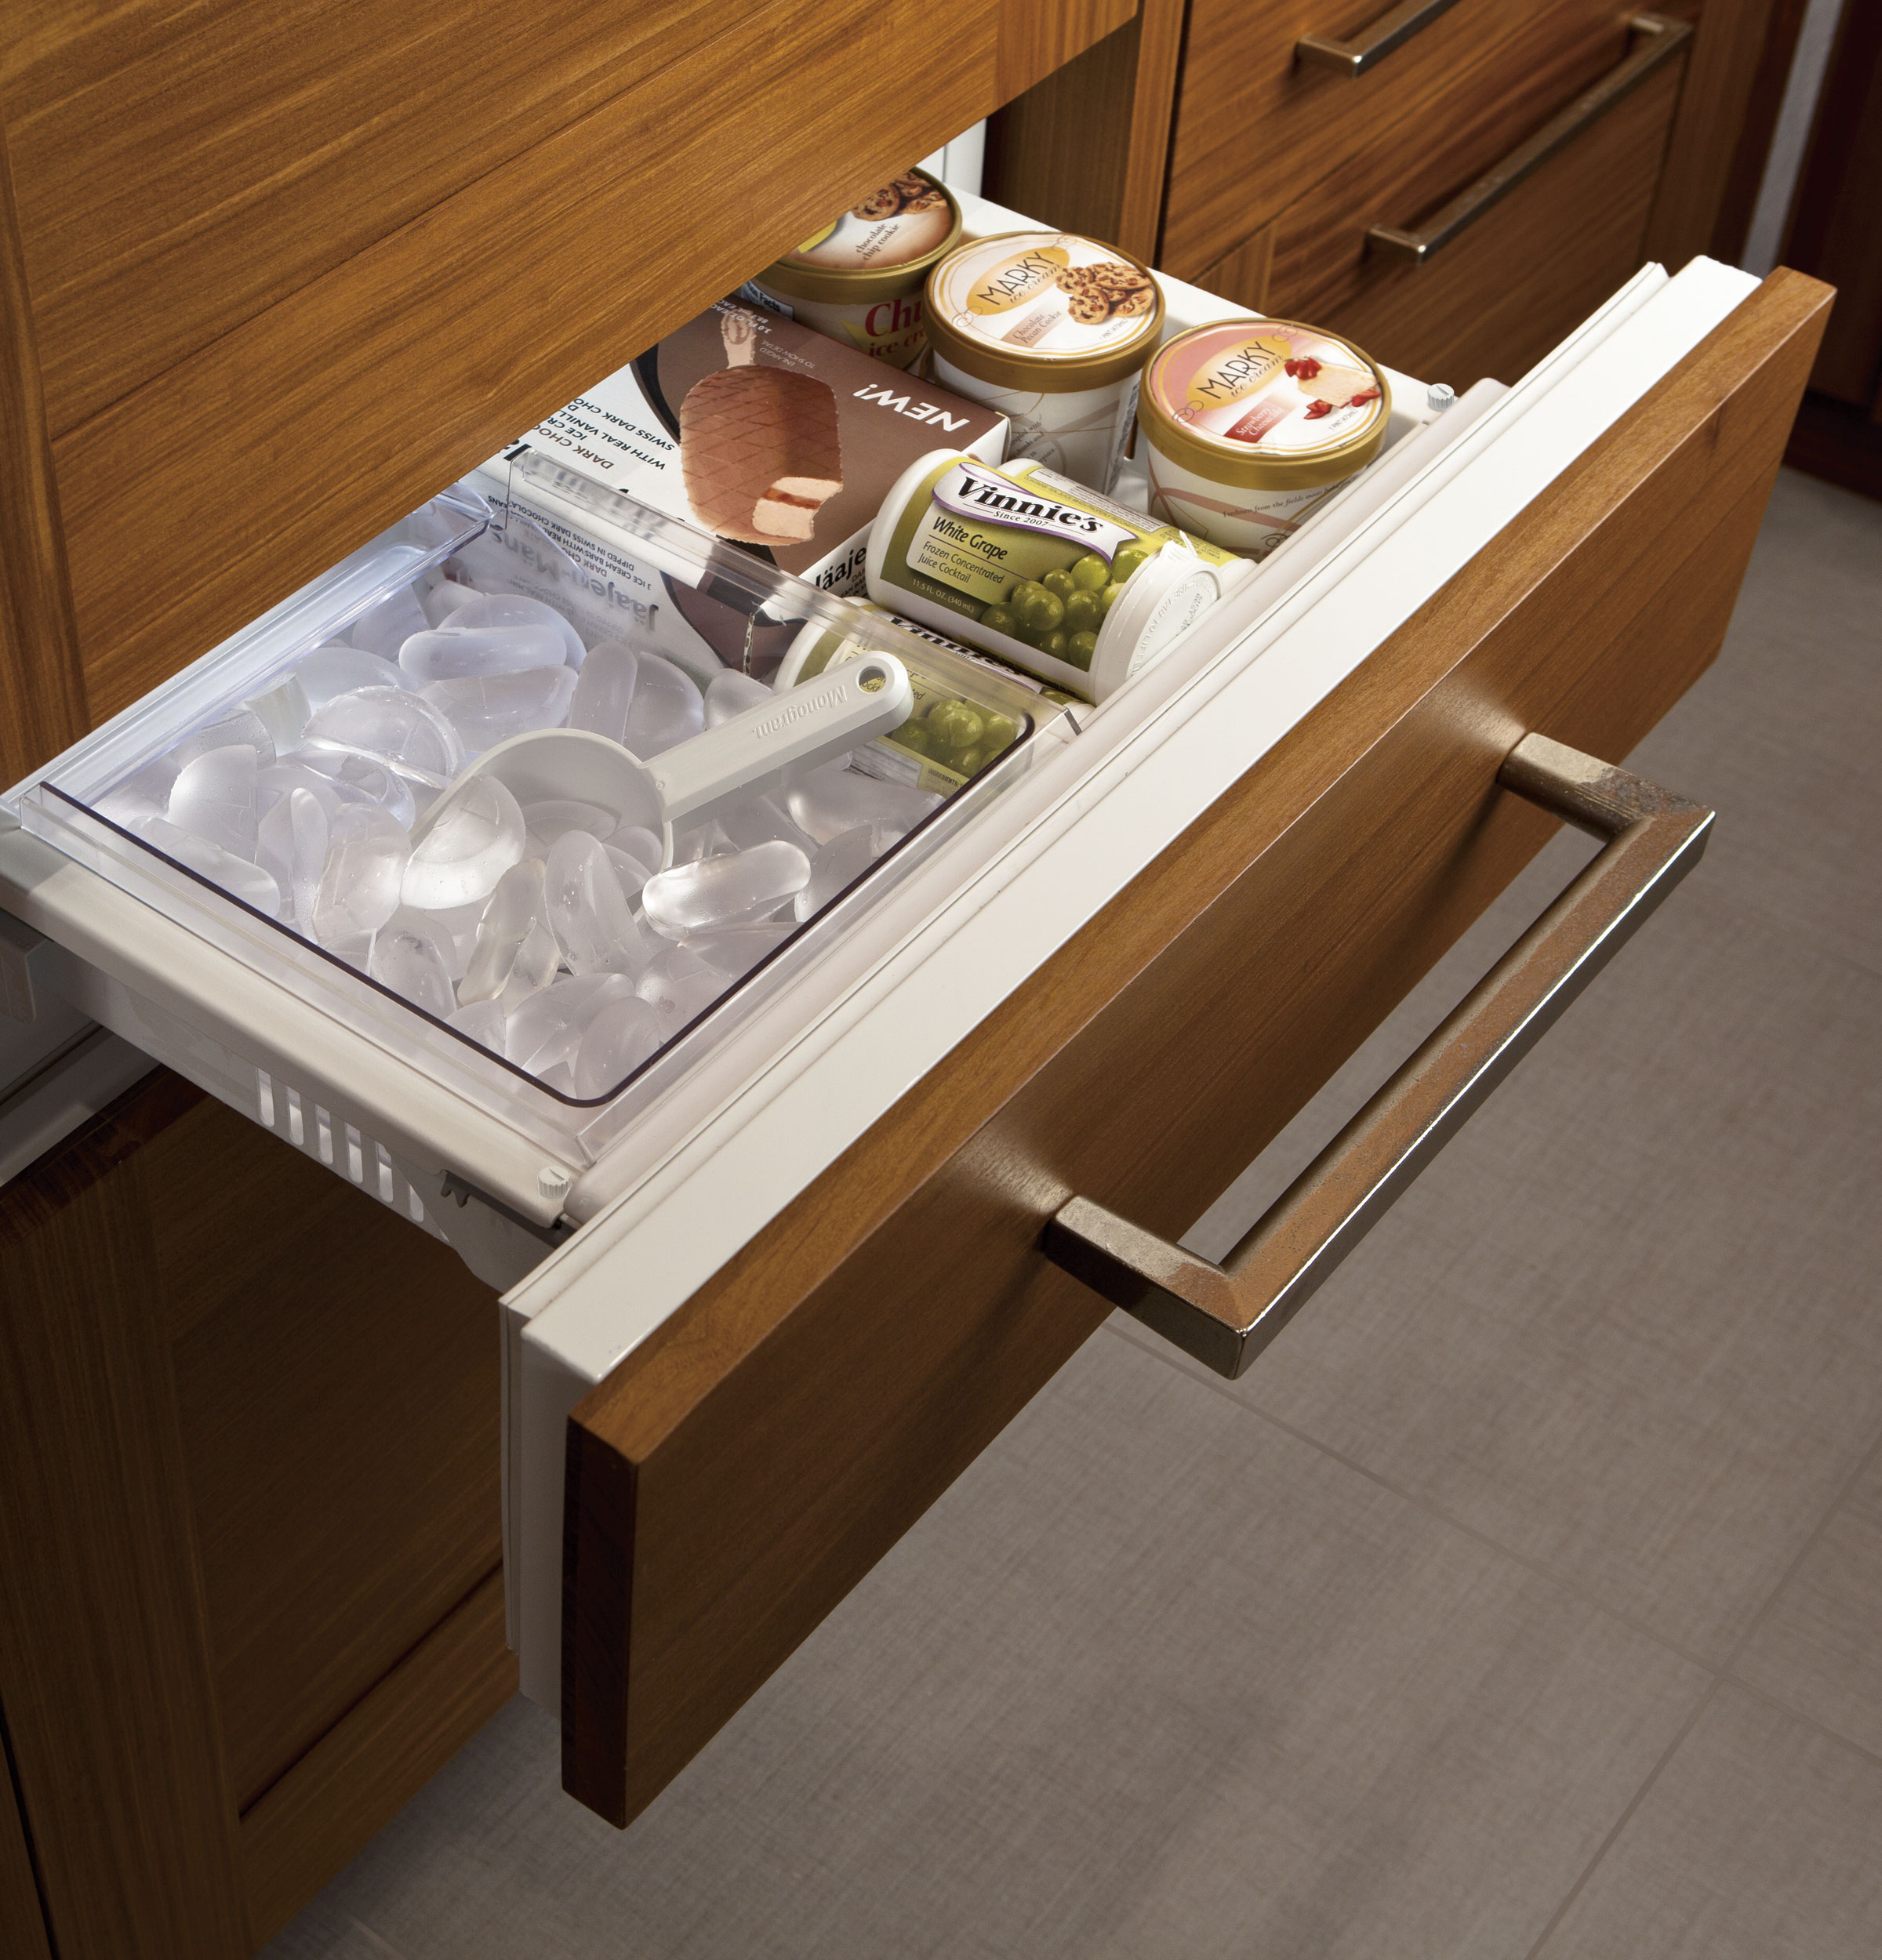 residence air double decor your throughout to jenn fridge kitchen chic applied drawers refrigerator drawer